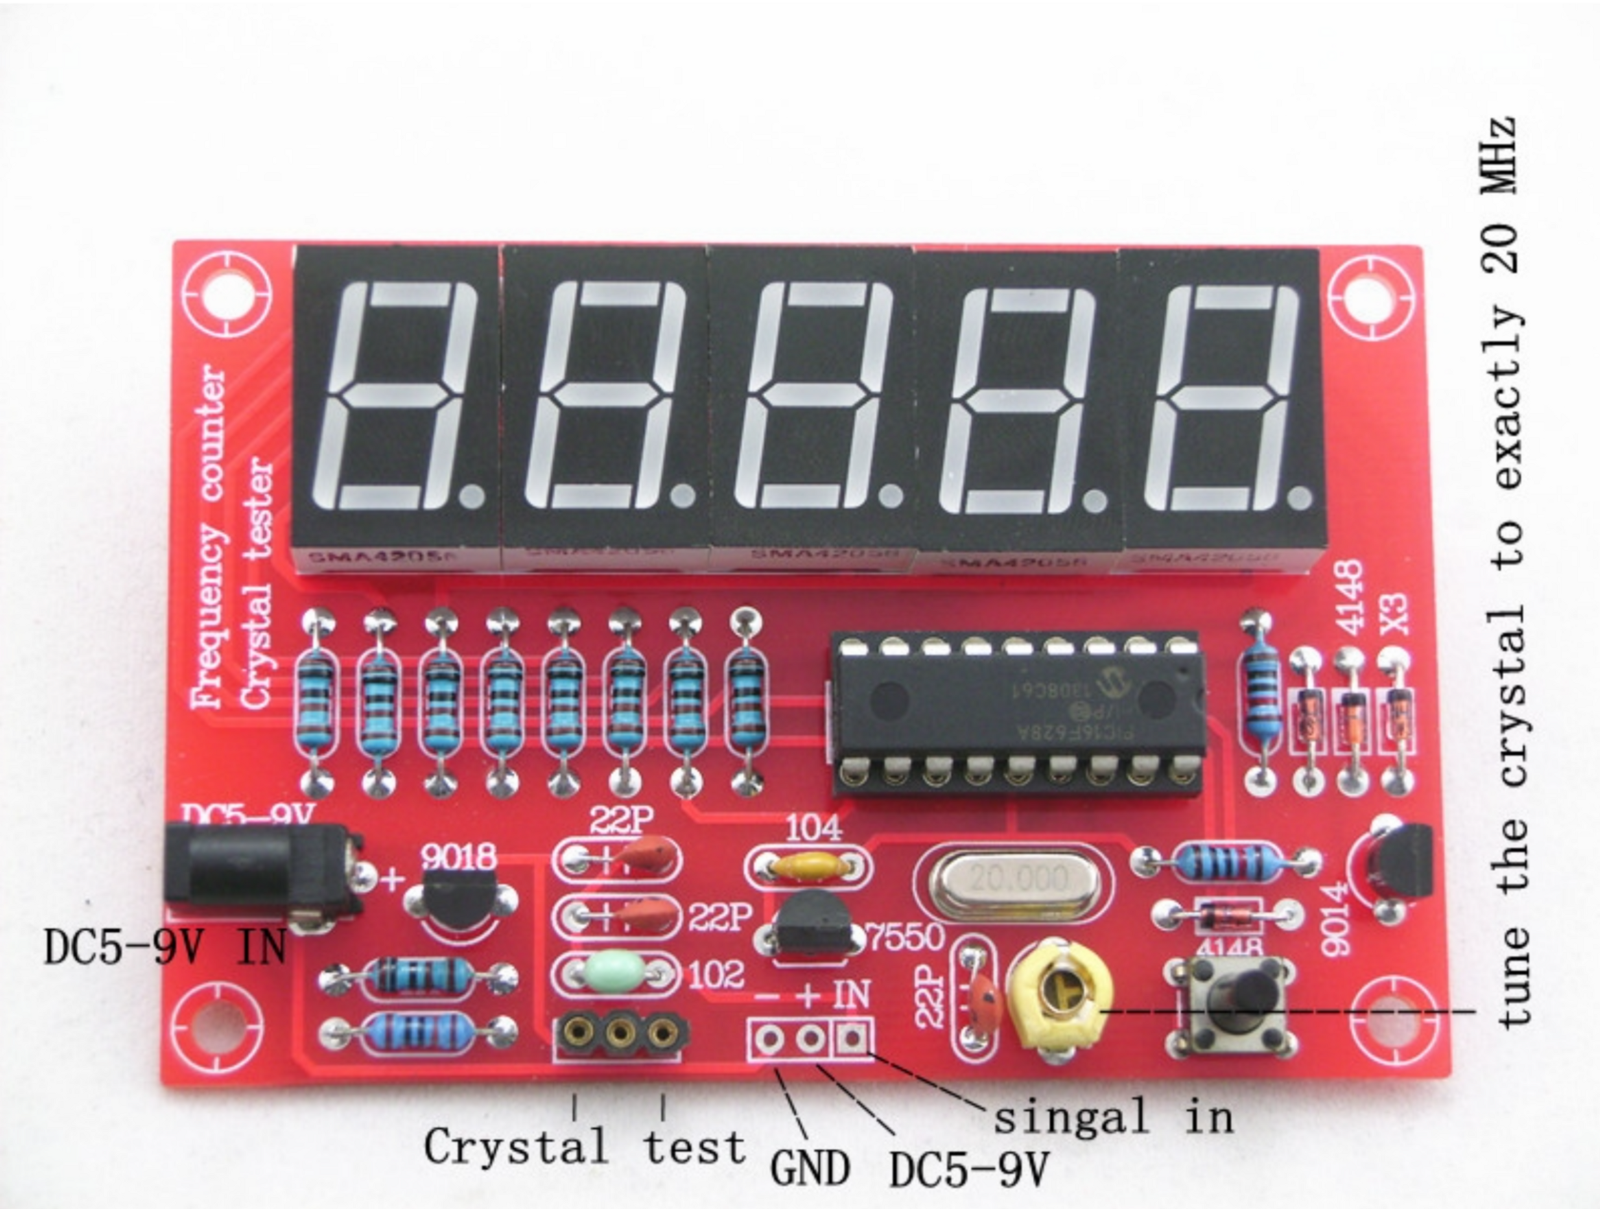 Crystal Oscillator Tester Frequency Counter Kit Review Frequencycounterpreamp Schematic The Manual Also Says Test Range Is About 1m 45m Although It Does Support Measuring Kilohertz Signals Khz Frequencies Are